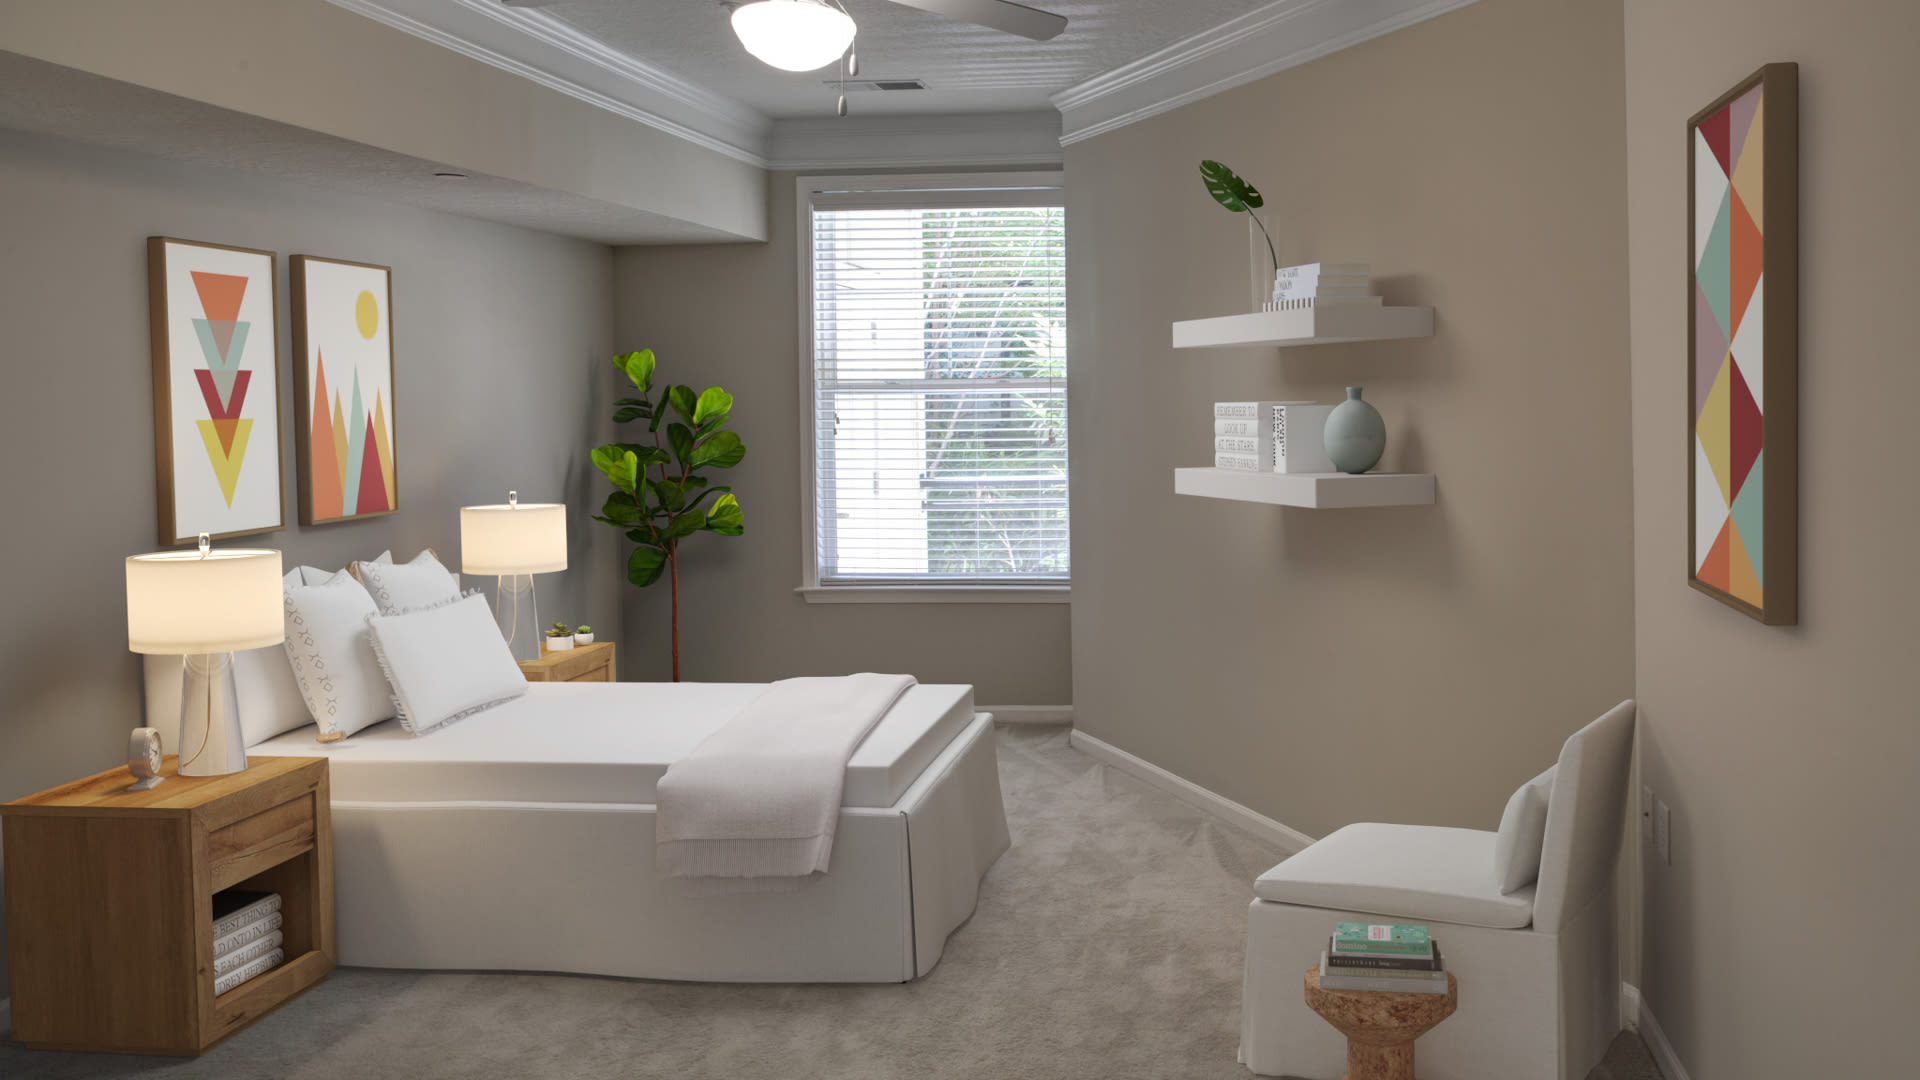 Westchester Rockville Station Apartments - Carpeted Bedroom